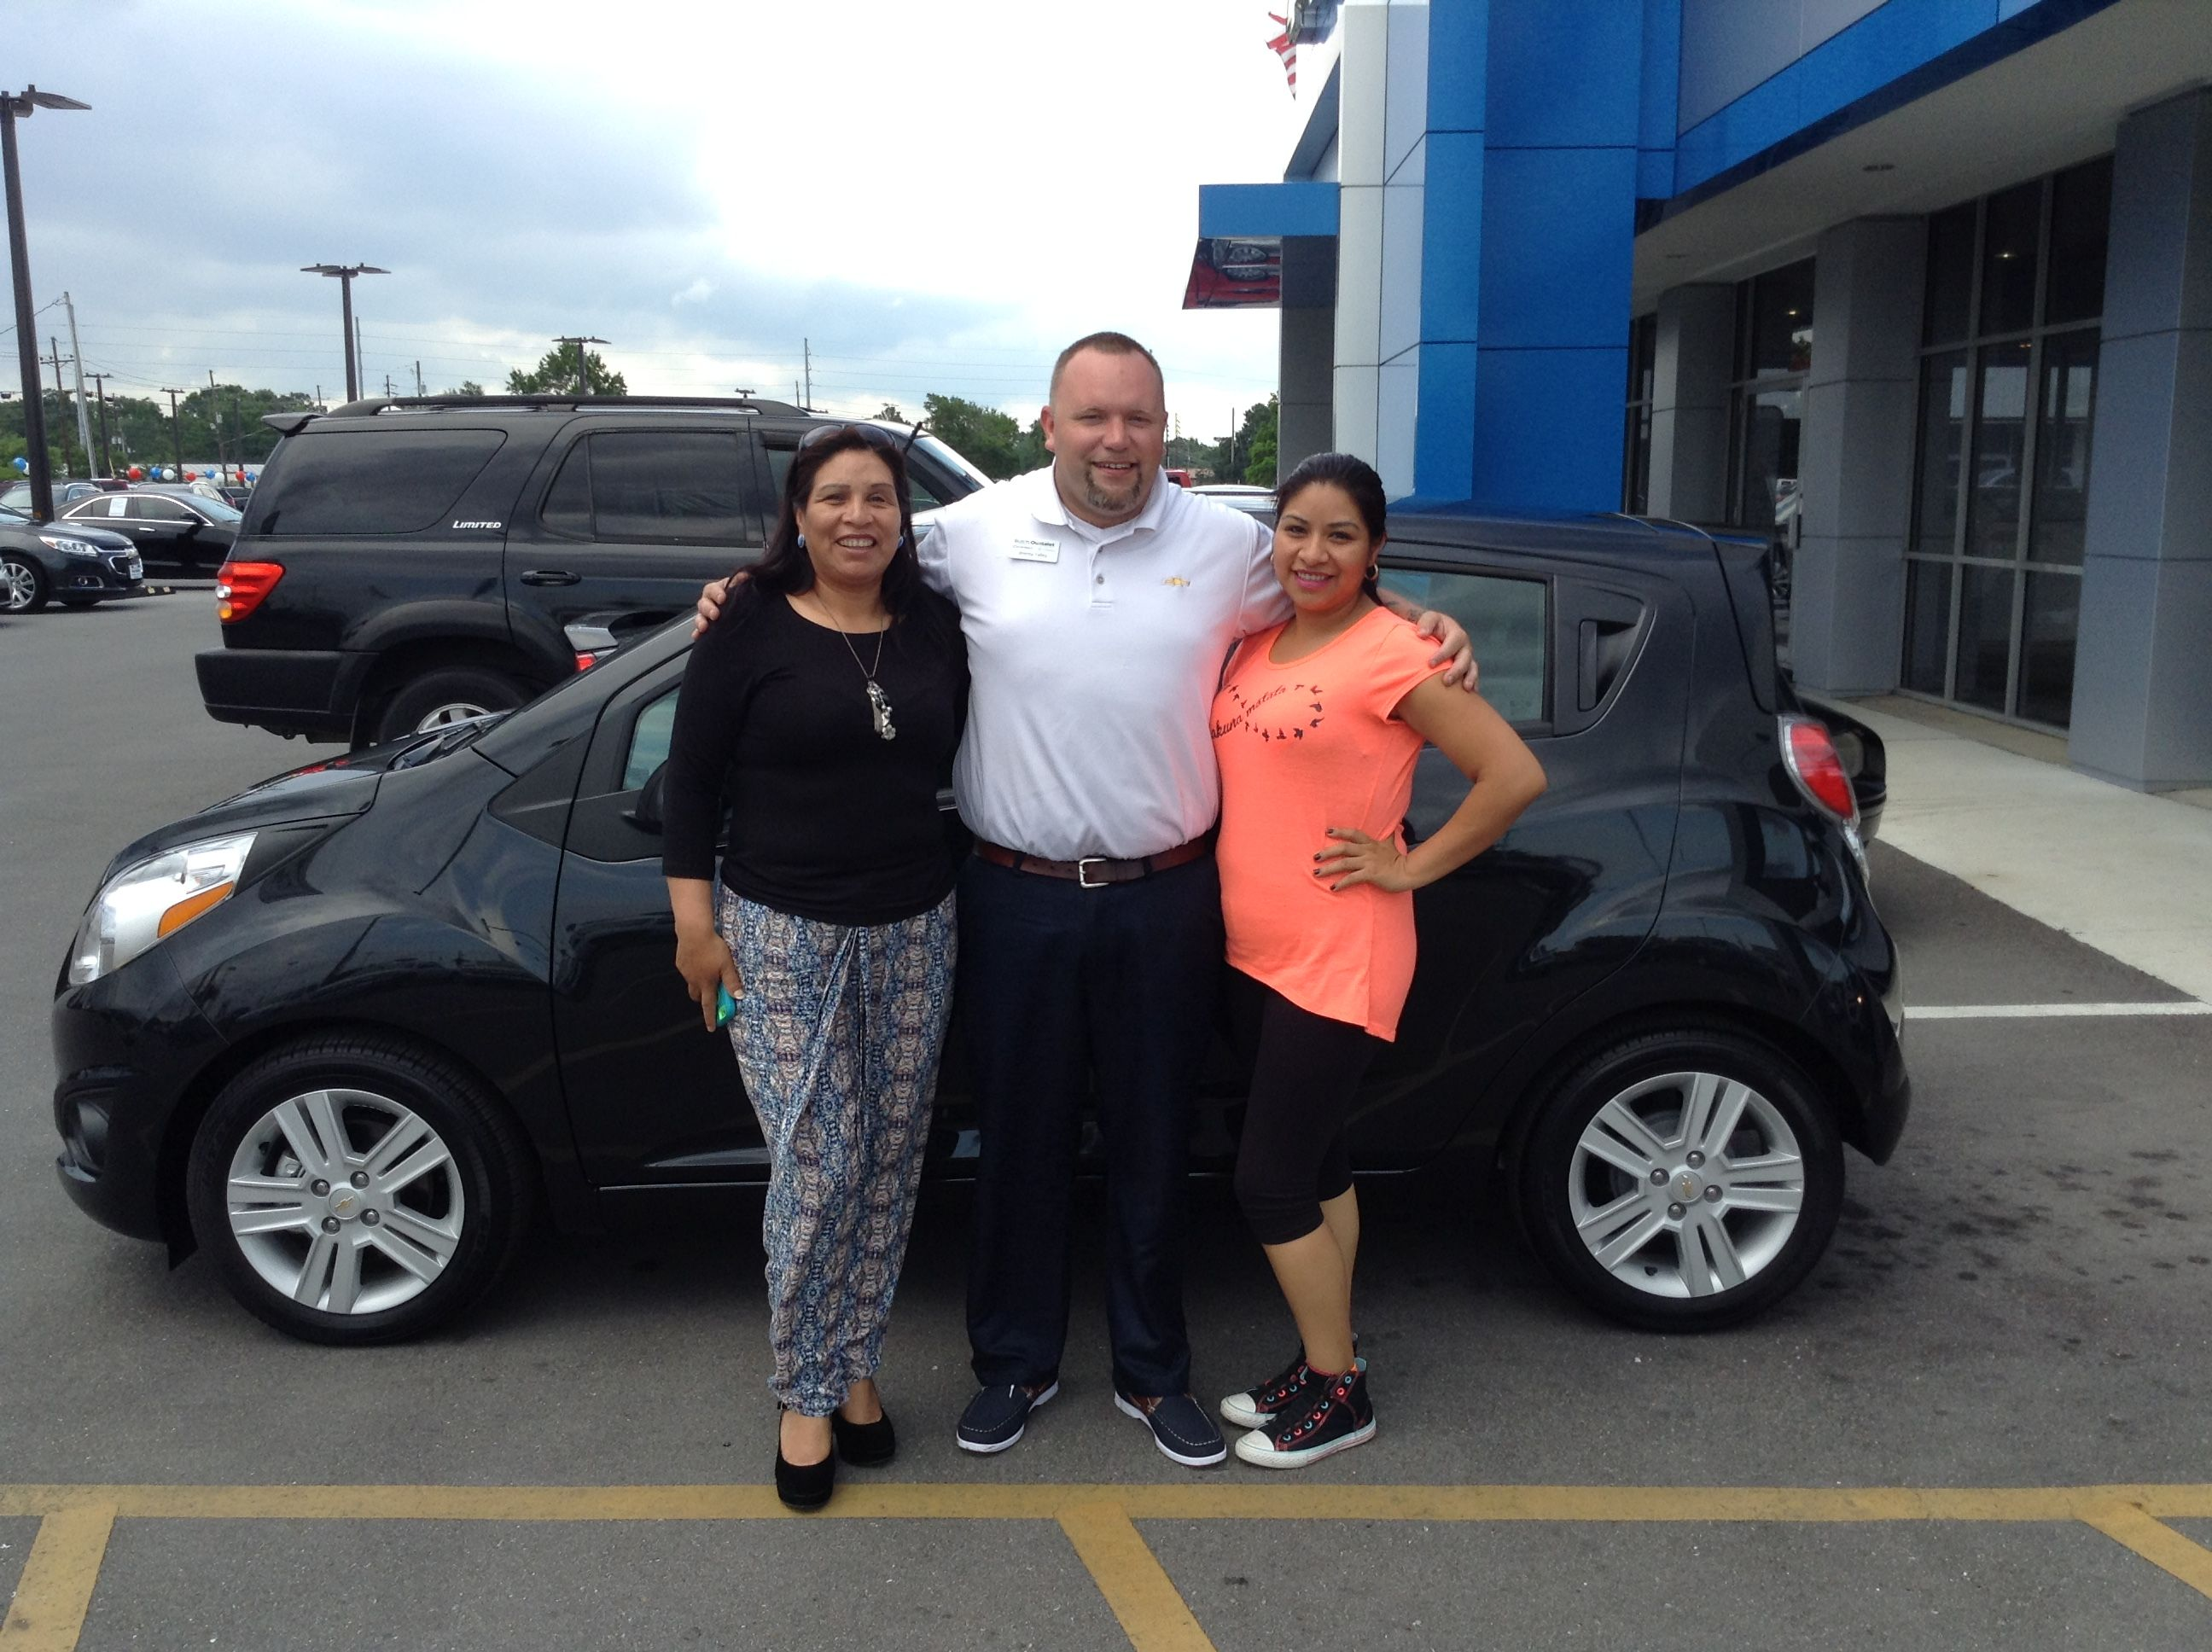 Another Chevrolet Spark Has Left The Building And So Has Another Super Deal Pictured Below Are Maria Gonzalez Who Is The Owner Of This Chevrolet Spark Couple Photos Chevrolet